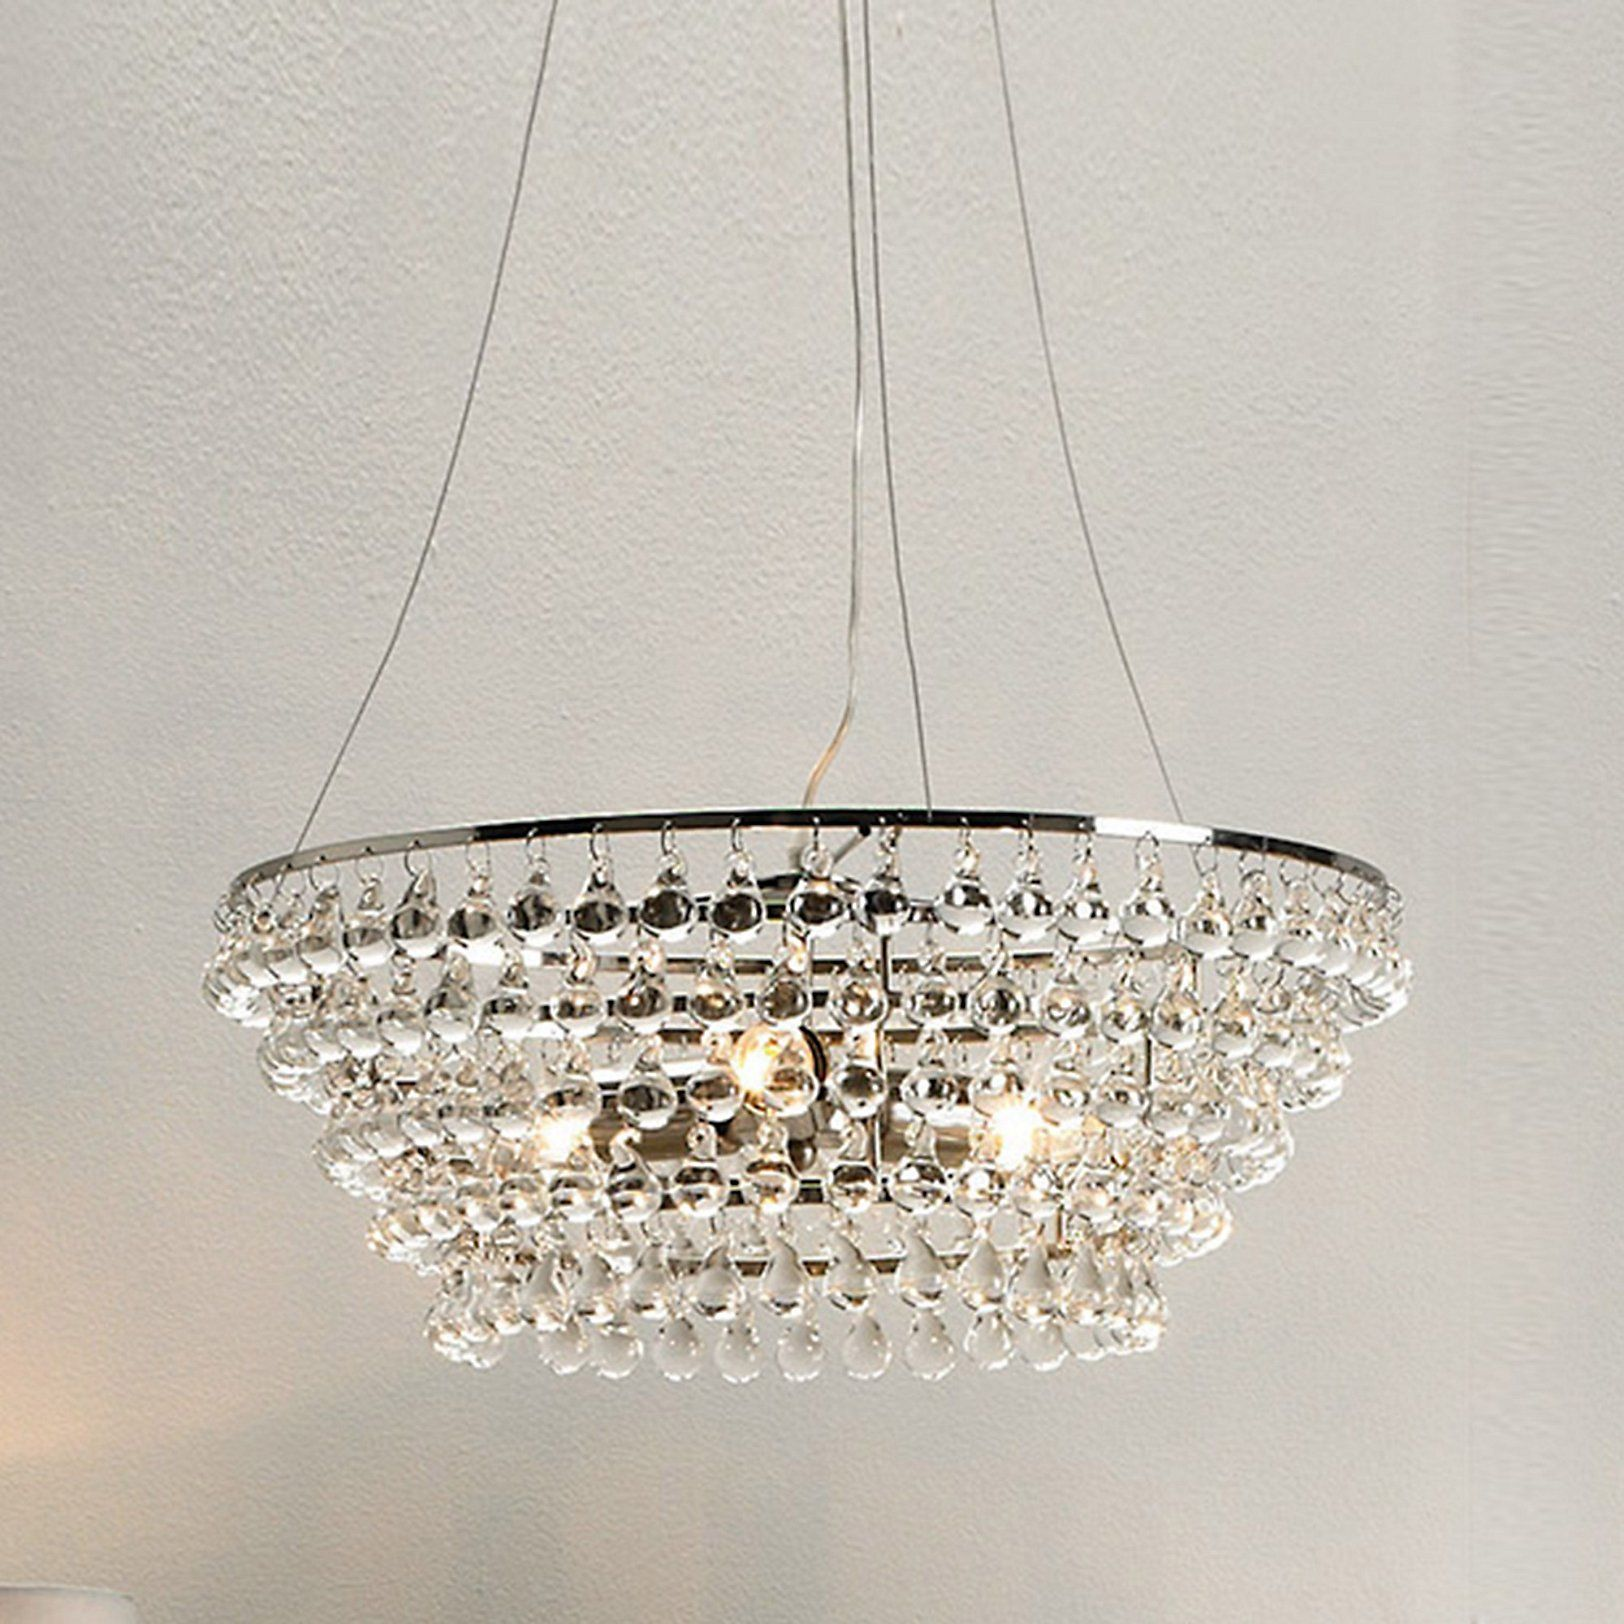 Solid Glass Orb Chandelier Ceiling Lights